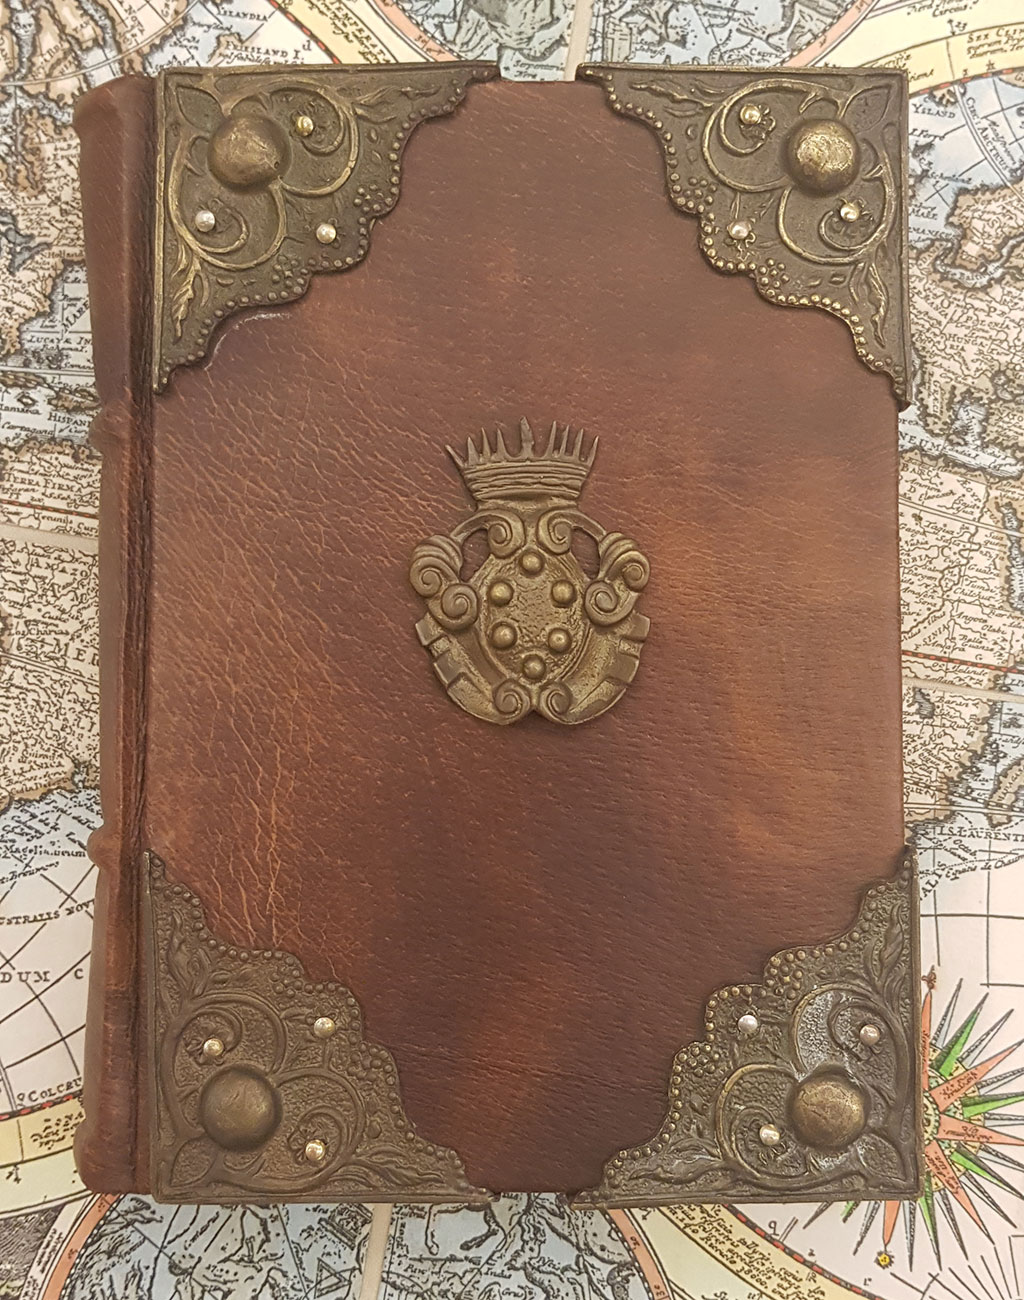 Small Leather Bound Journal With 4 Corners And Medici Coat Of Arms In Brass Signum Firenze